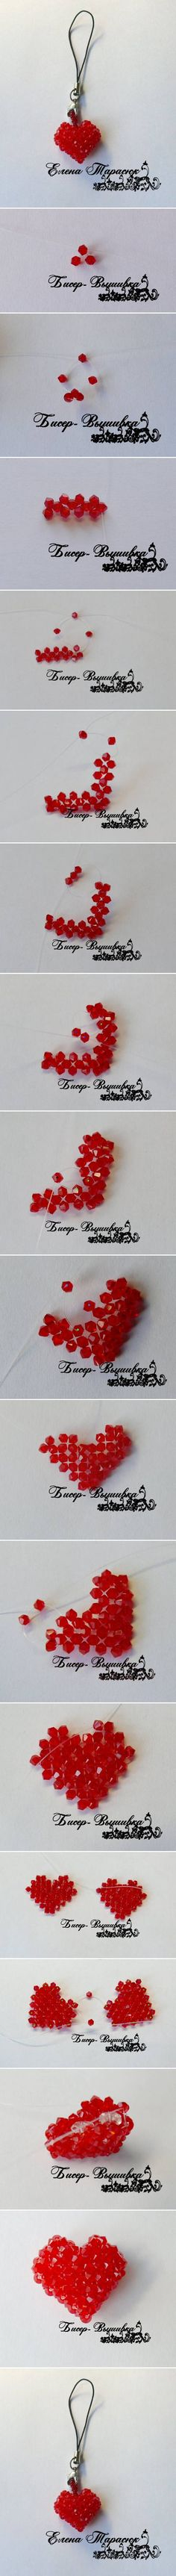 DIY Beads Heart Ornament DIY Projects | UsefulDIY.com Follow Us on Facebook ==> http://www.facebook.com/UsefulDiy